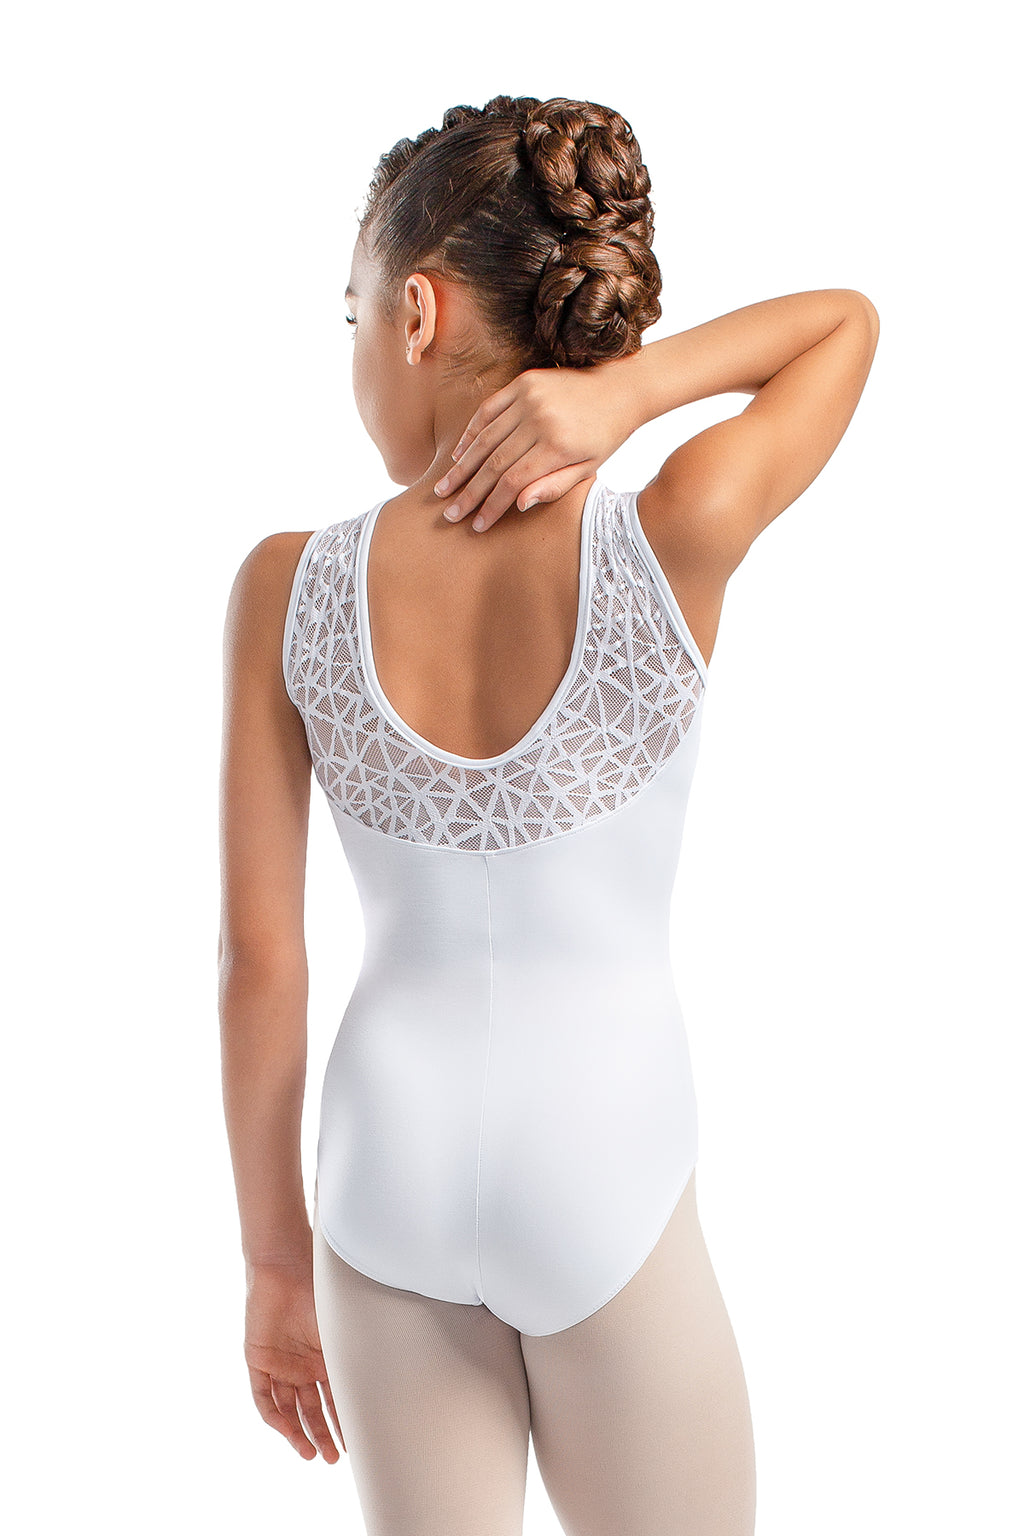 So Danca Girls Tank Leotard with Keyhole Neckline - L1819